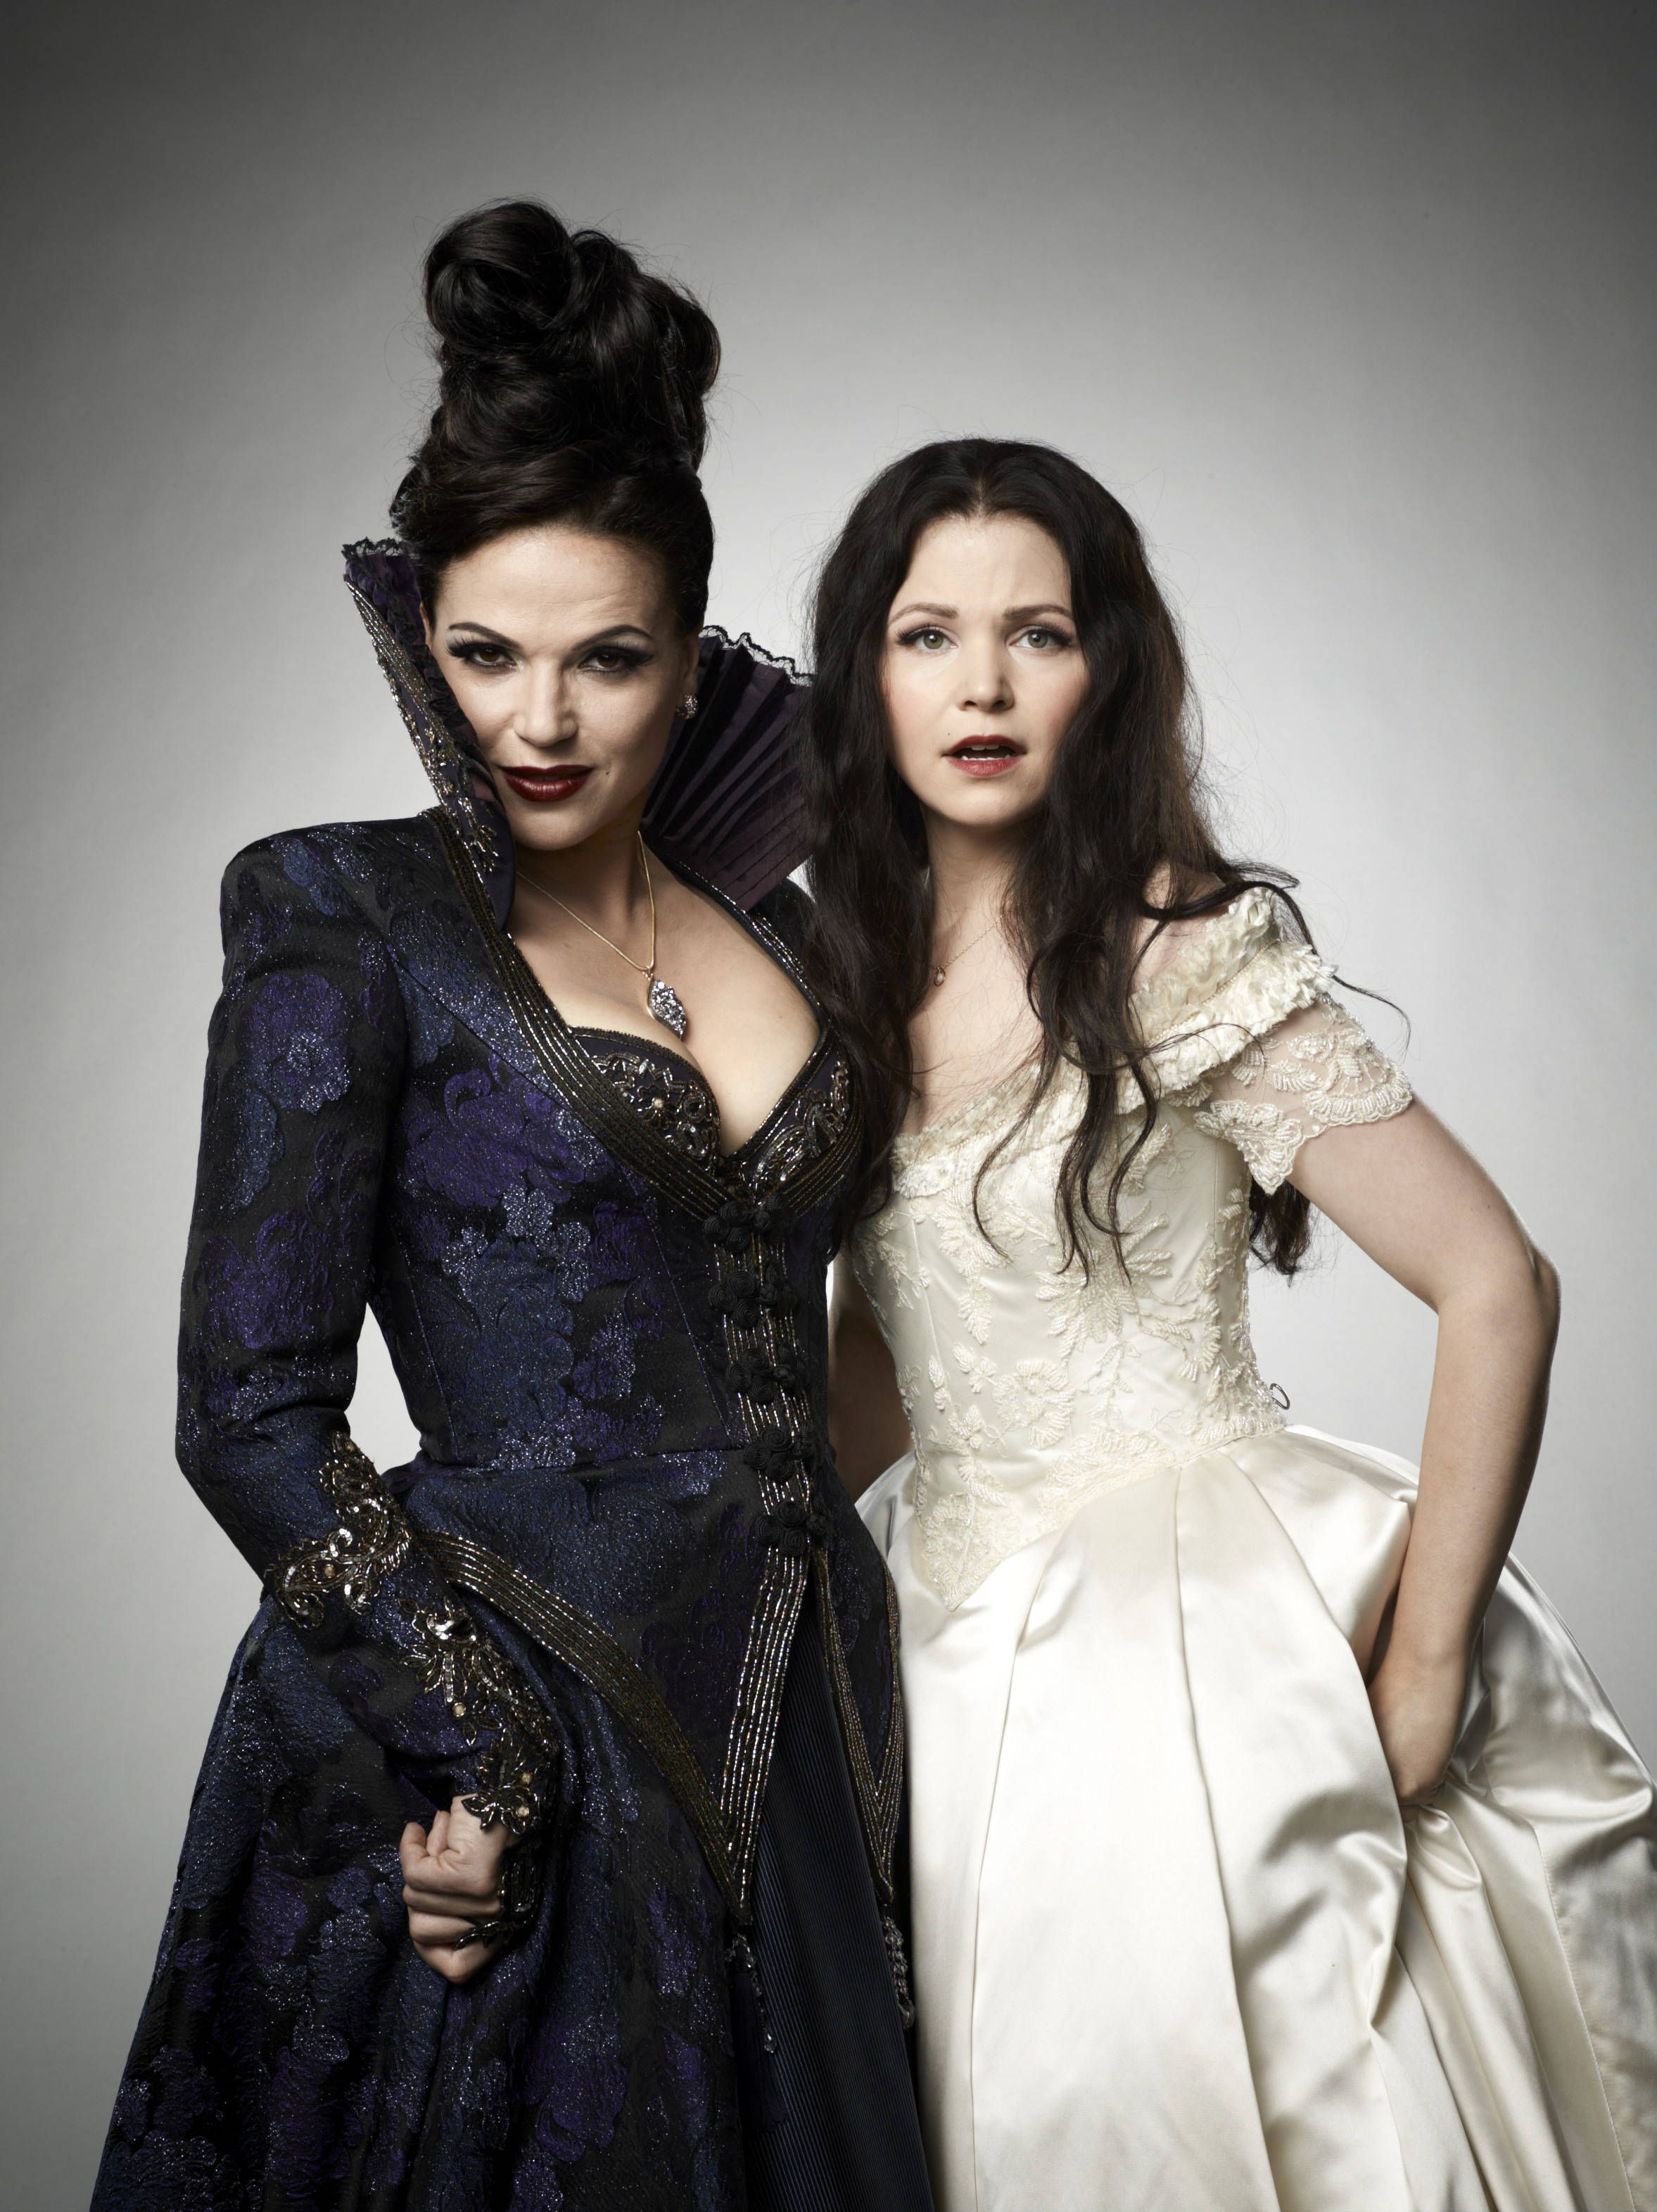 Once Upon A Time Photo: Regina | Once upon a time, Evil queen, Ouat